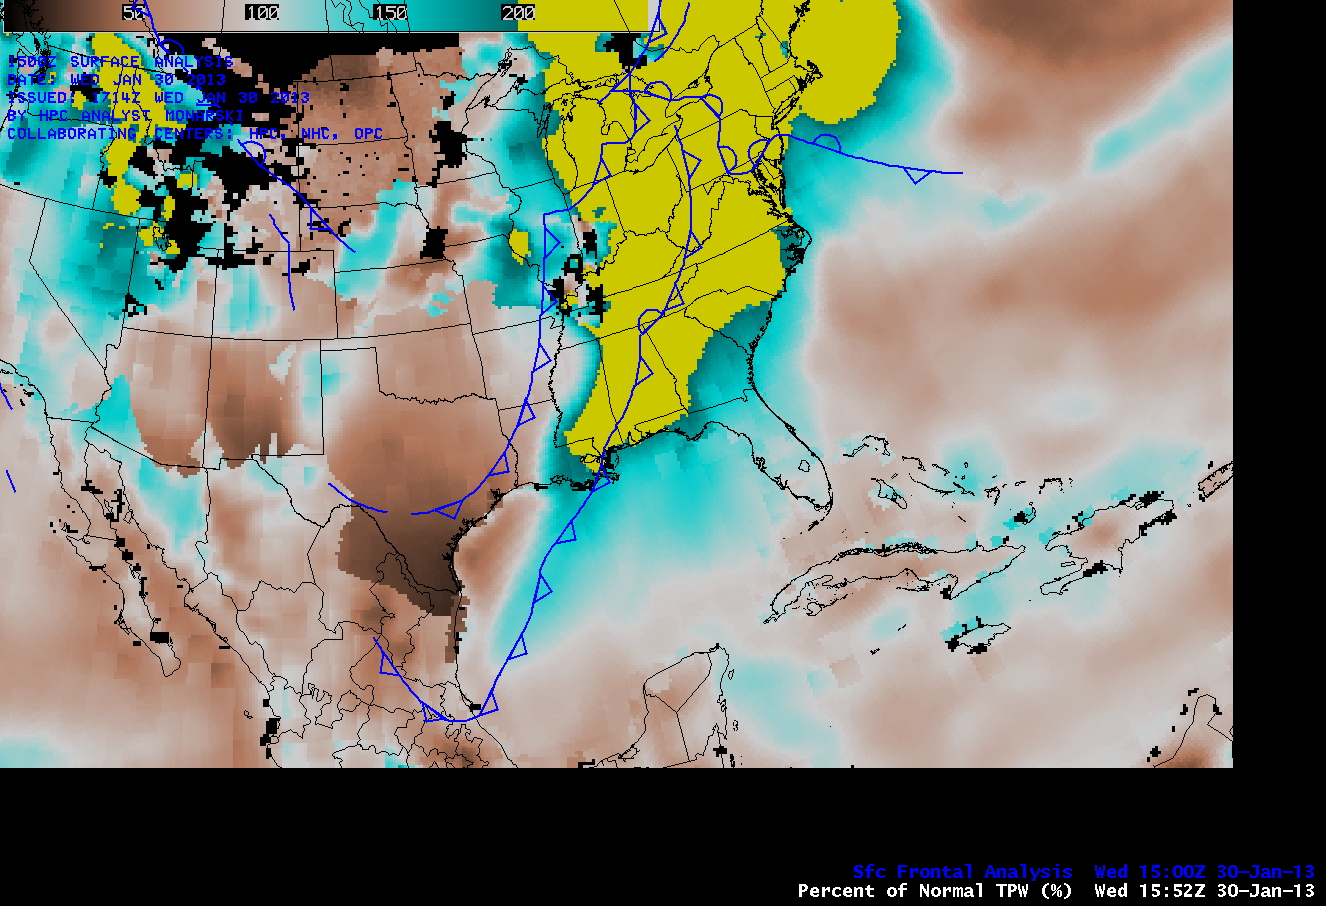 Percent of Normal TPW and Surface frontal analysis